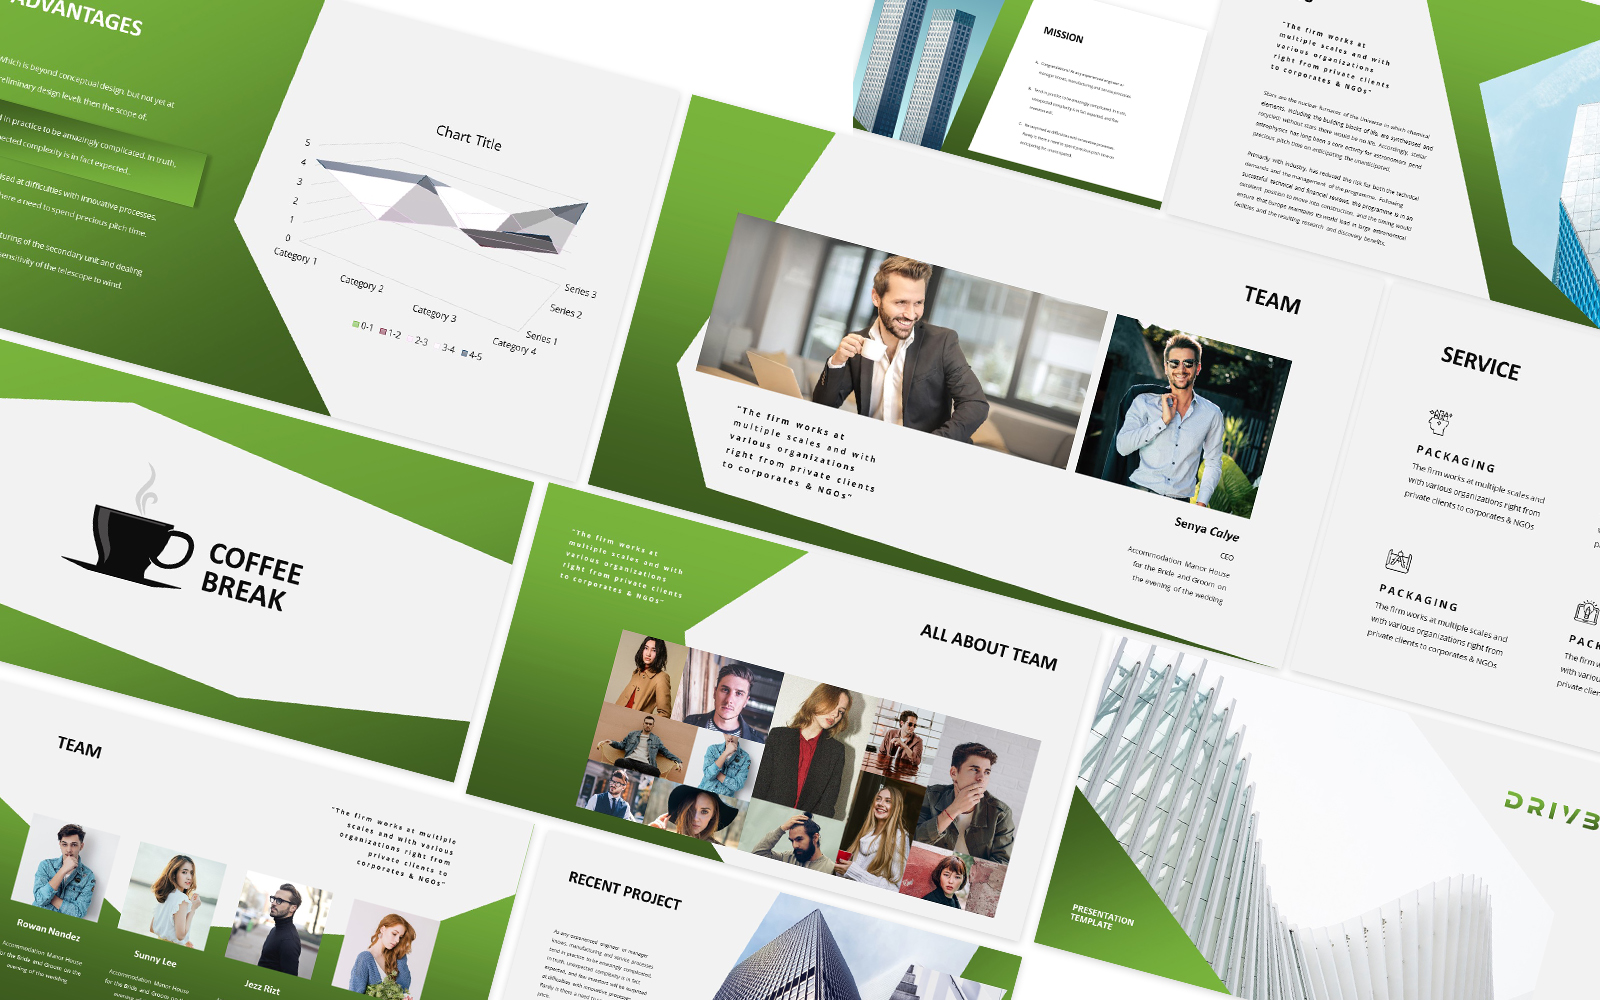 Drivby Powerpoint Template